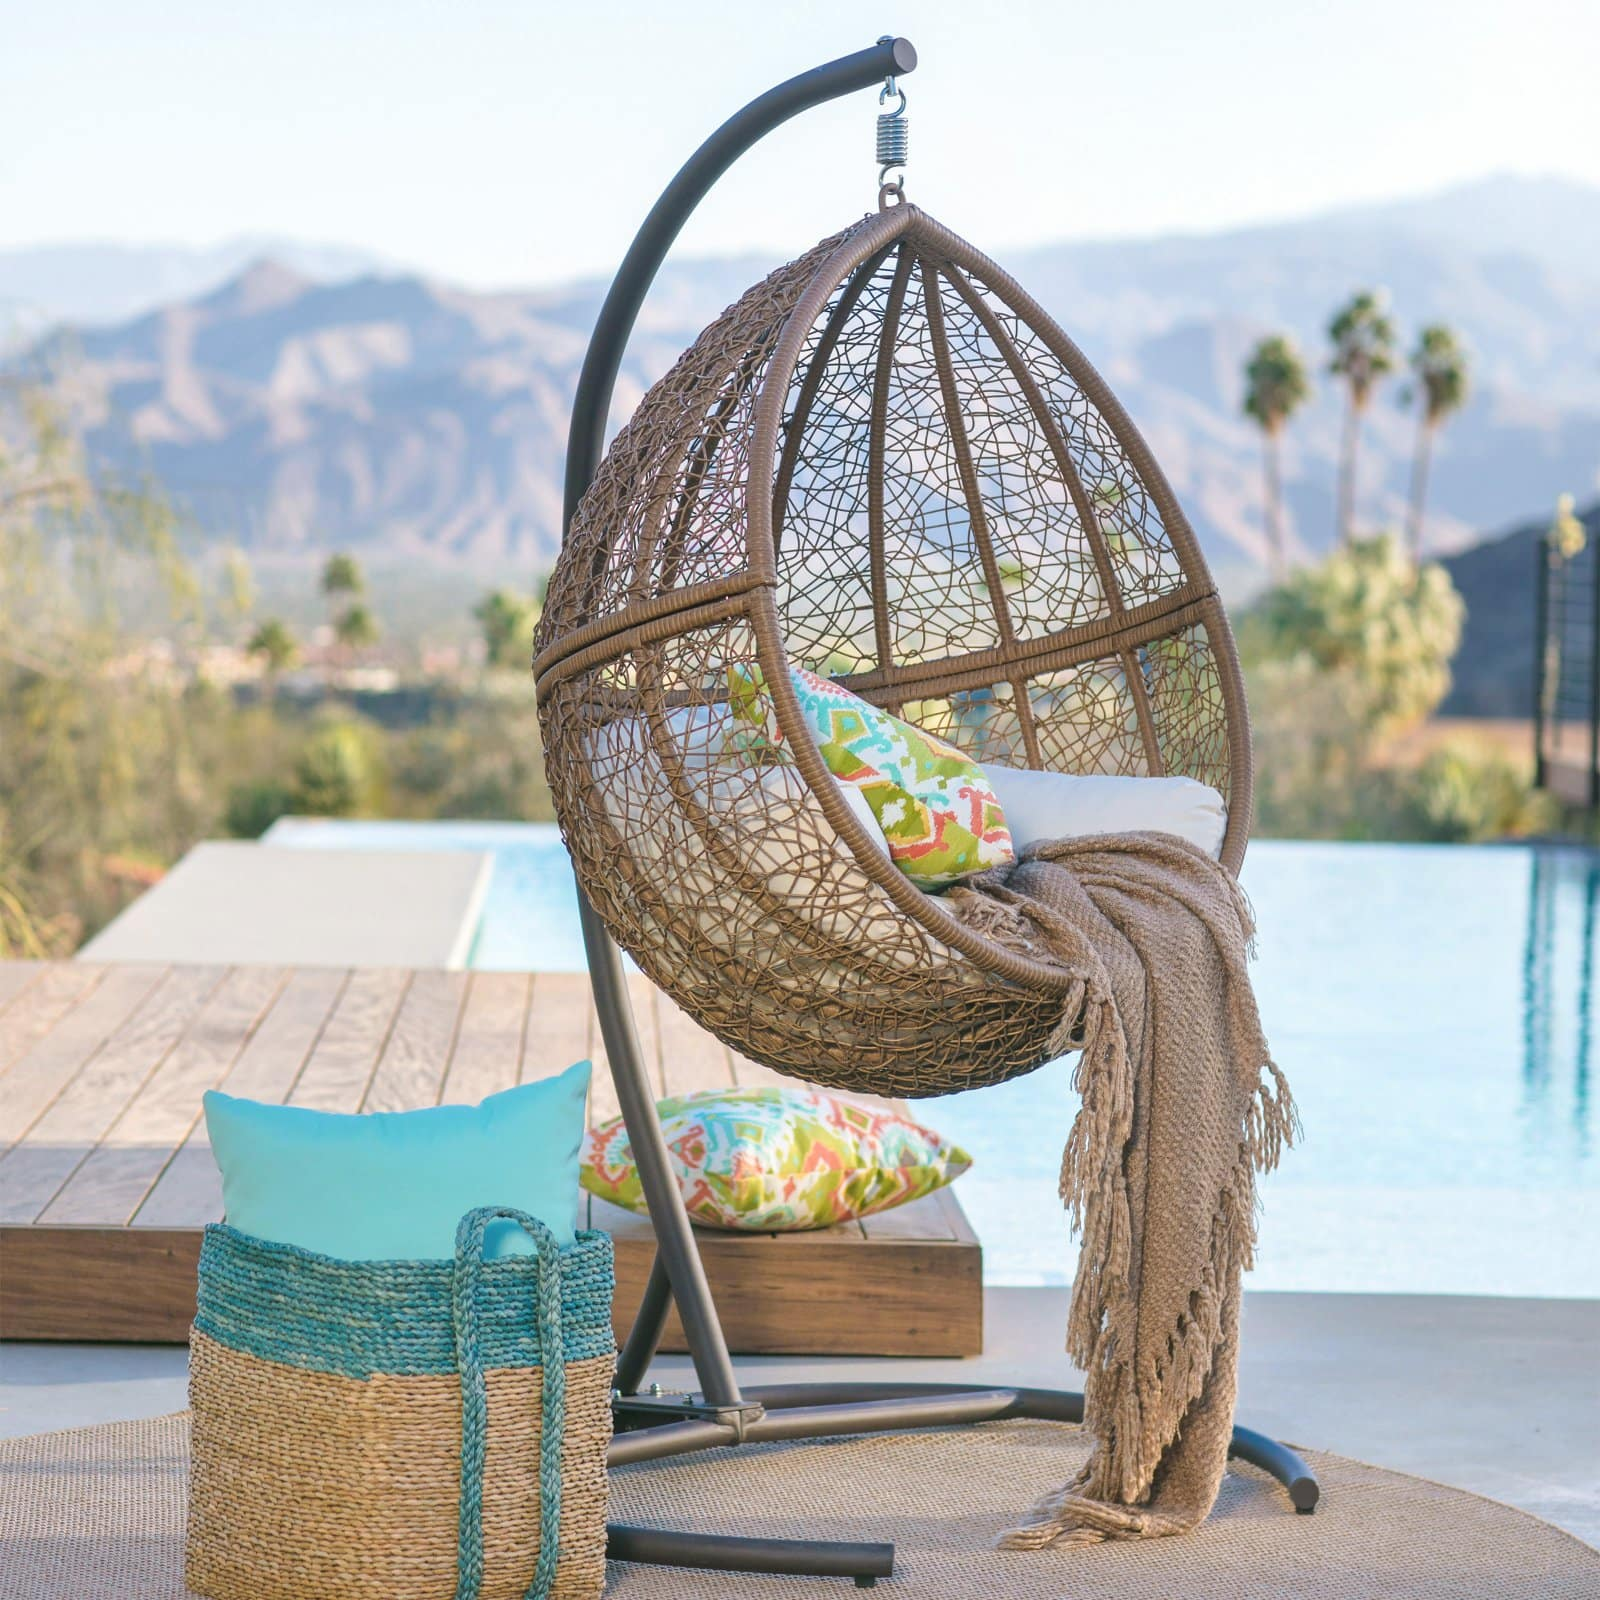 Belham Living Tanna Tear Drop Resin Wicker Hanging Egg Chair with Cushion and Stand $199.99 - Walmart